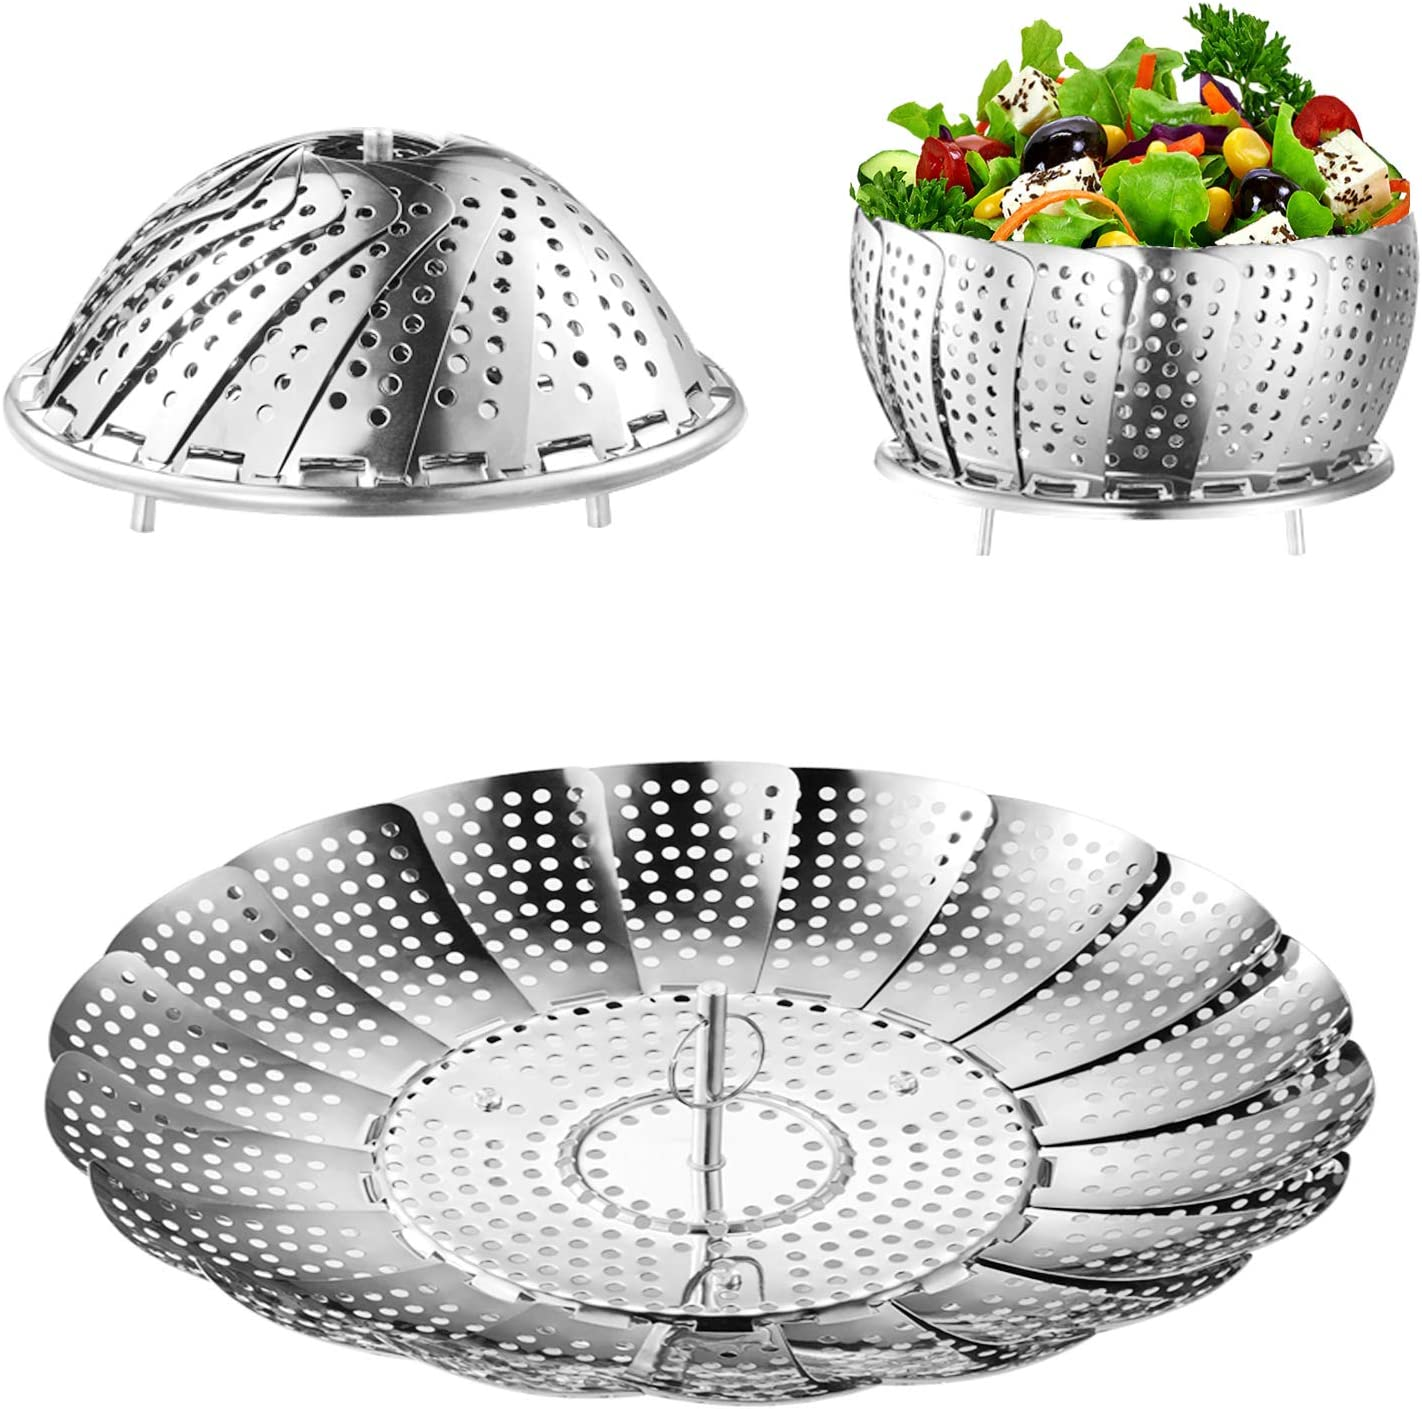 "Steamer Basket, Kmeivol Vegetable Steamer, Stainless Steel Steamer Food, Value Steamer Baskets for Cooking, Instant Pot Steamer Basket, Expandable to Fit Various Size Pot (6"" to 8.7"")"